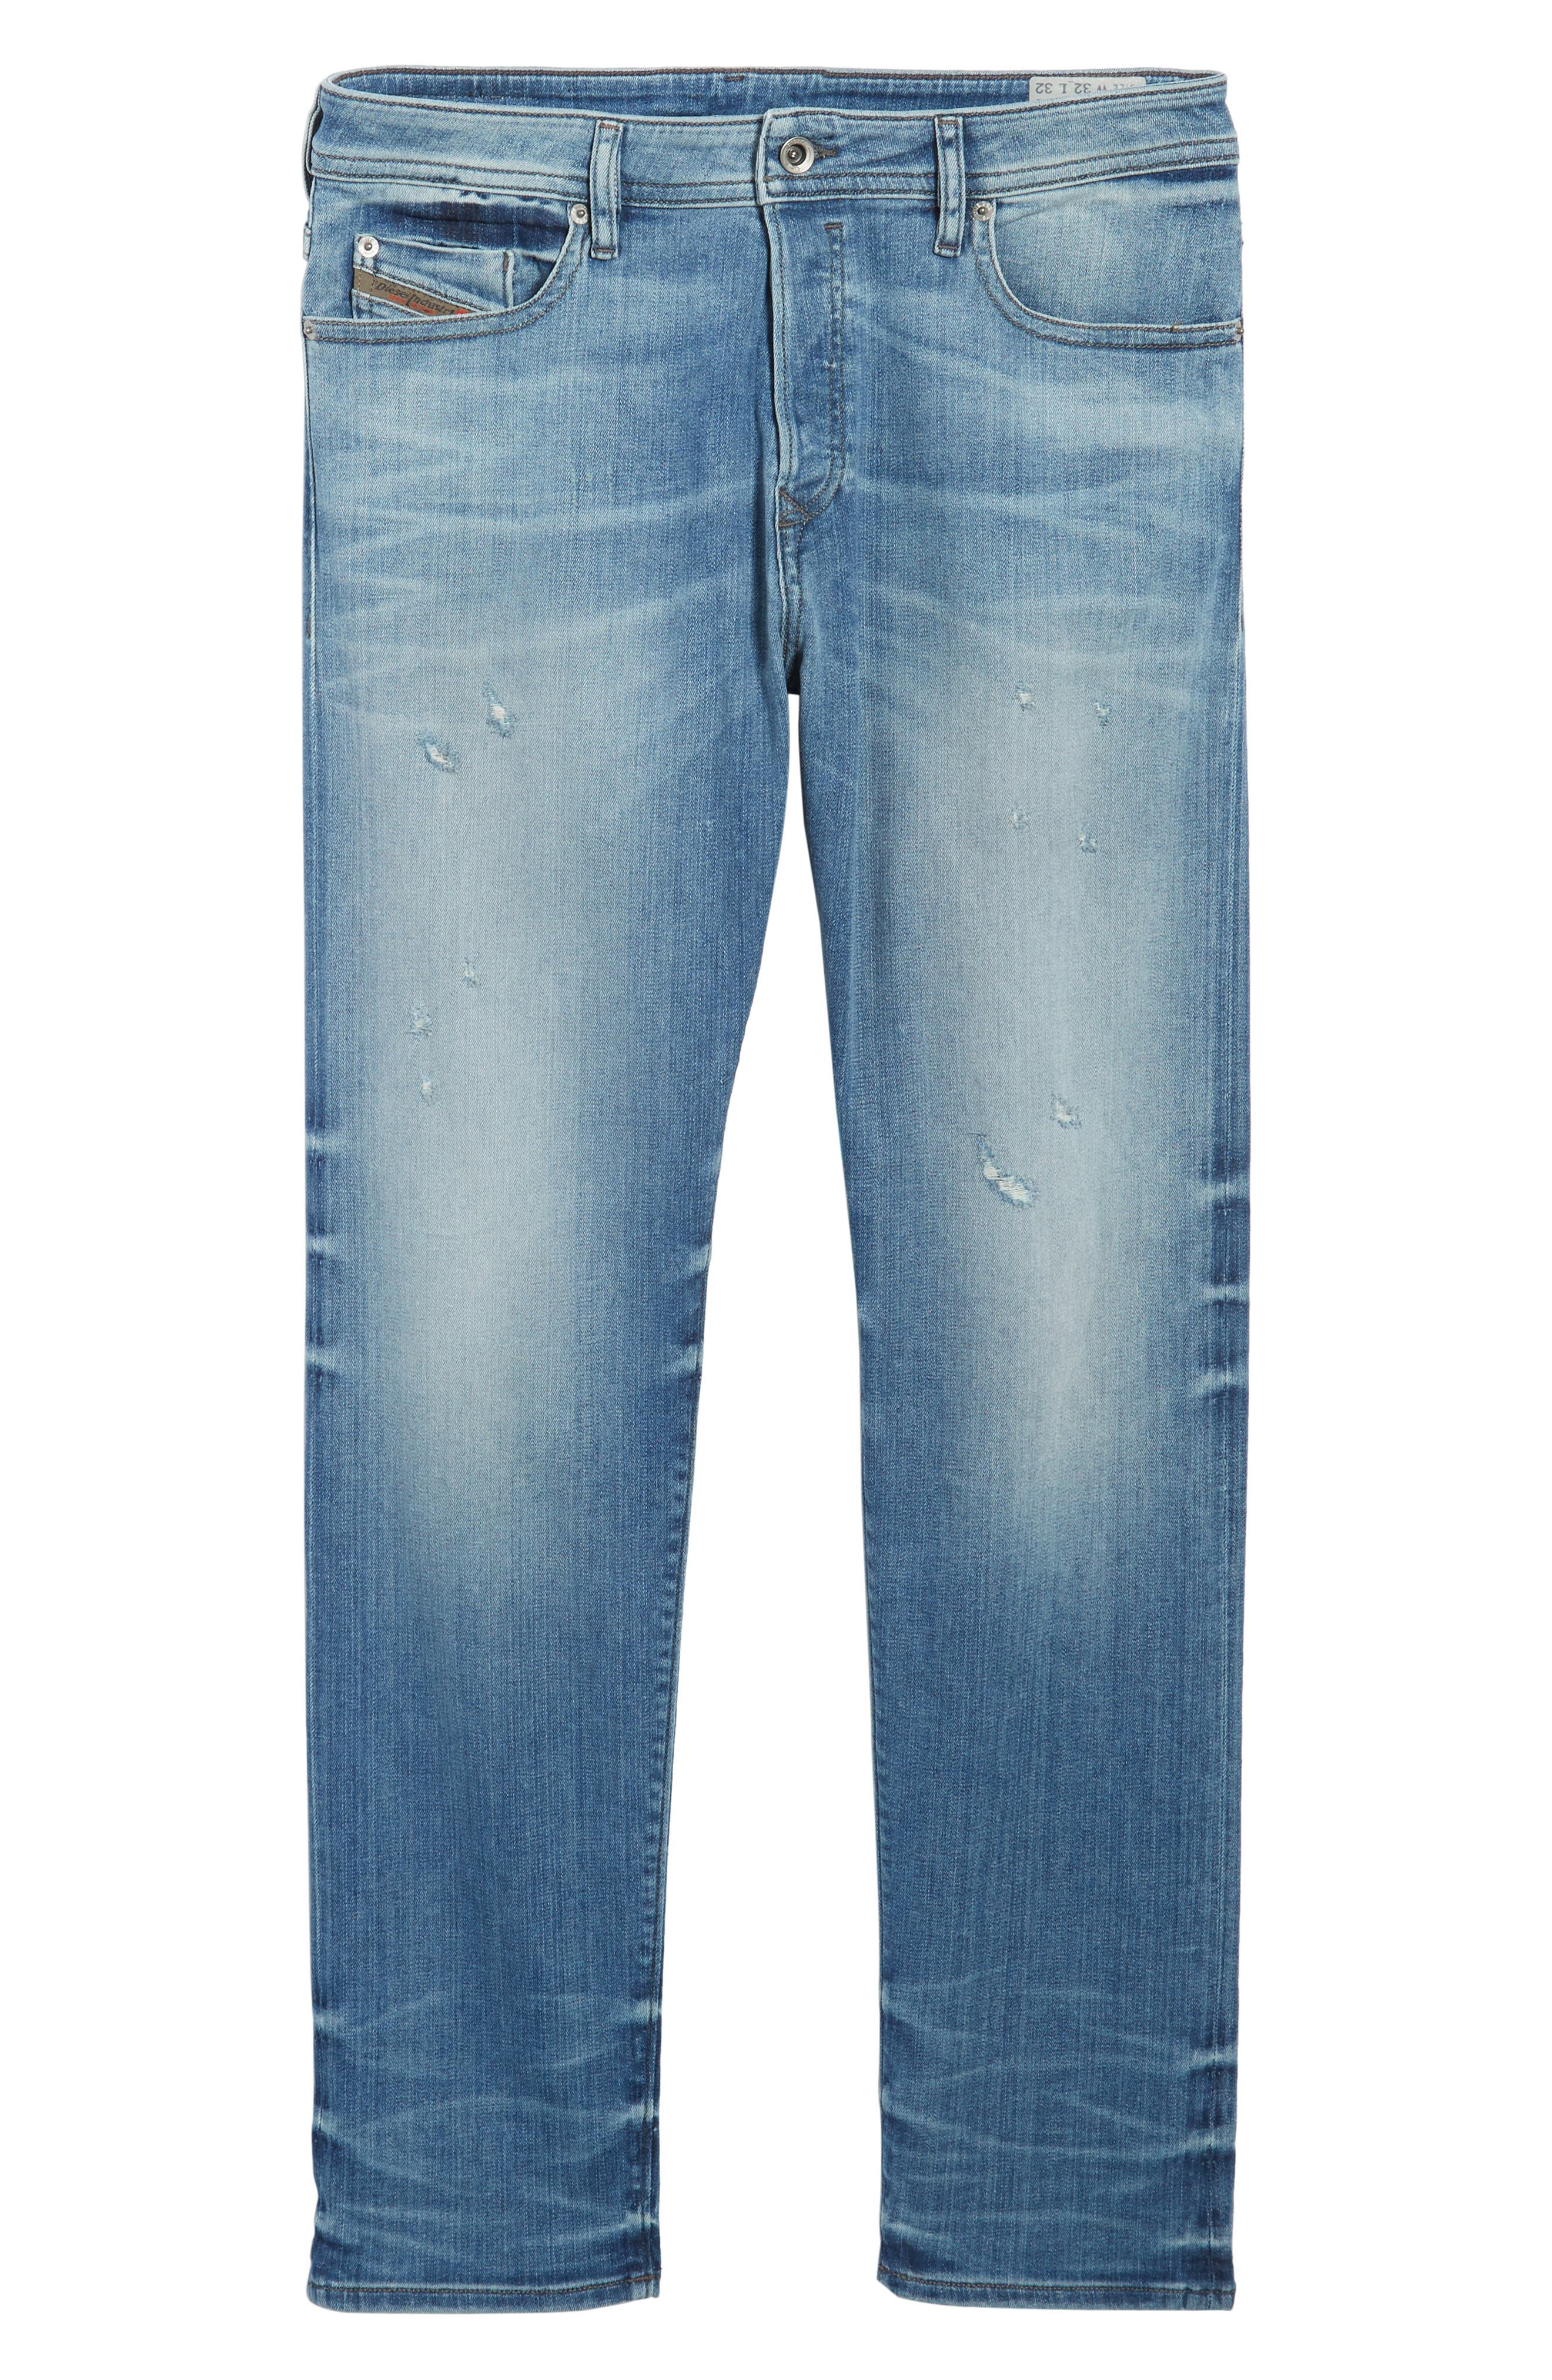 'Buster' Slim Straight Fit Jeans,                             Alternate thumbnail 7, color,                             400